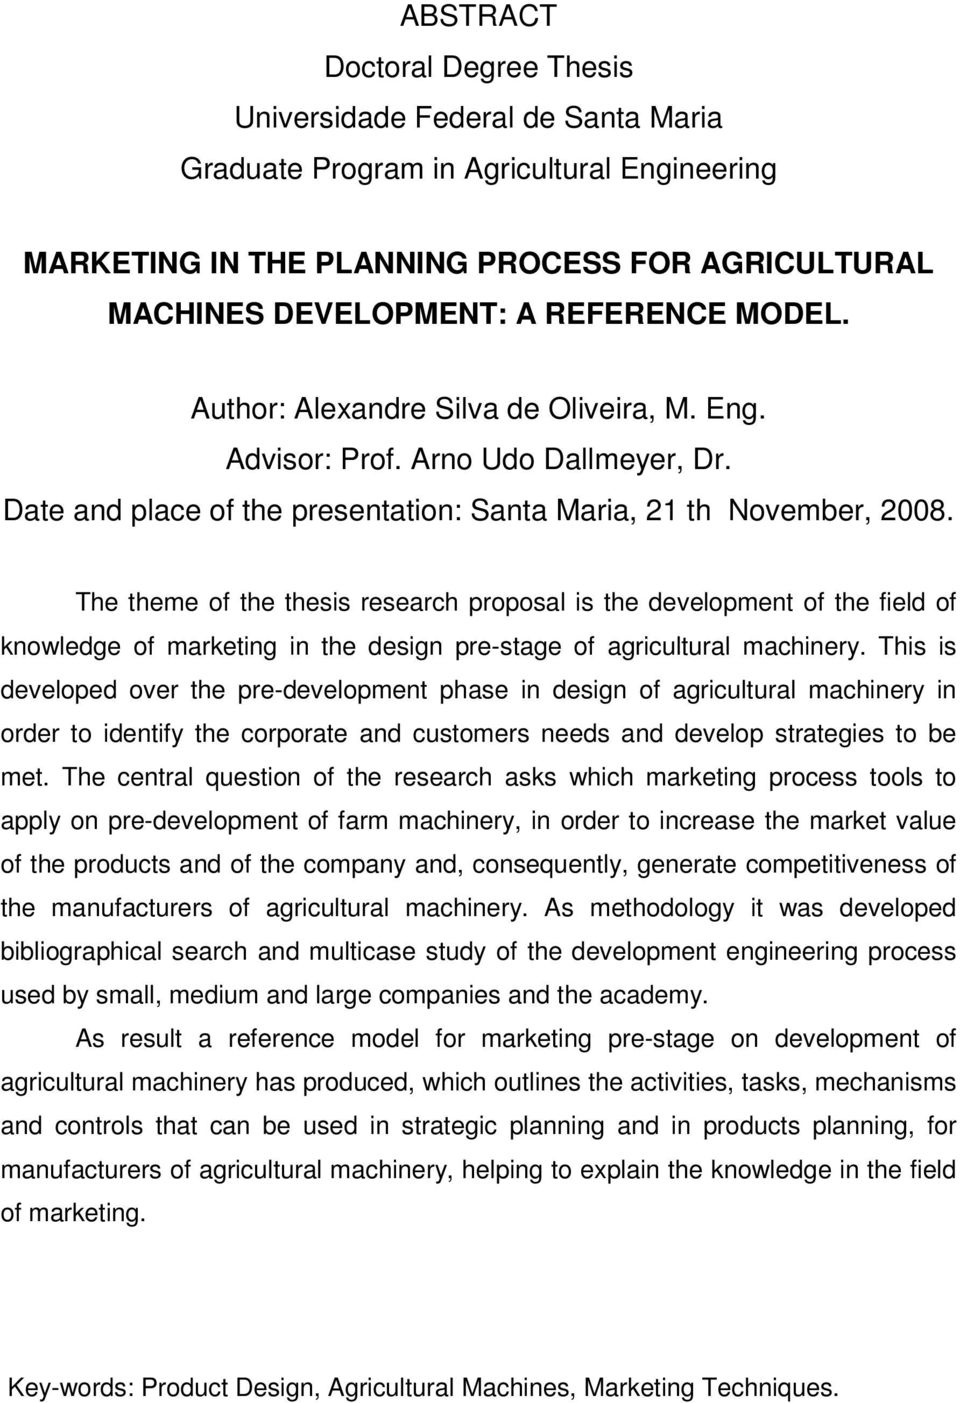 The theme of the thesis research proposal is the development of the field of knowledge of marketing in the design pre-stage of agricultural machinery.